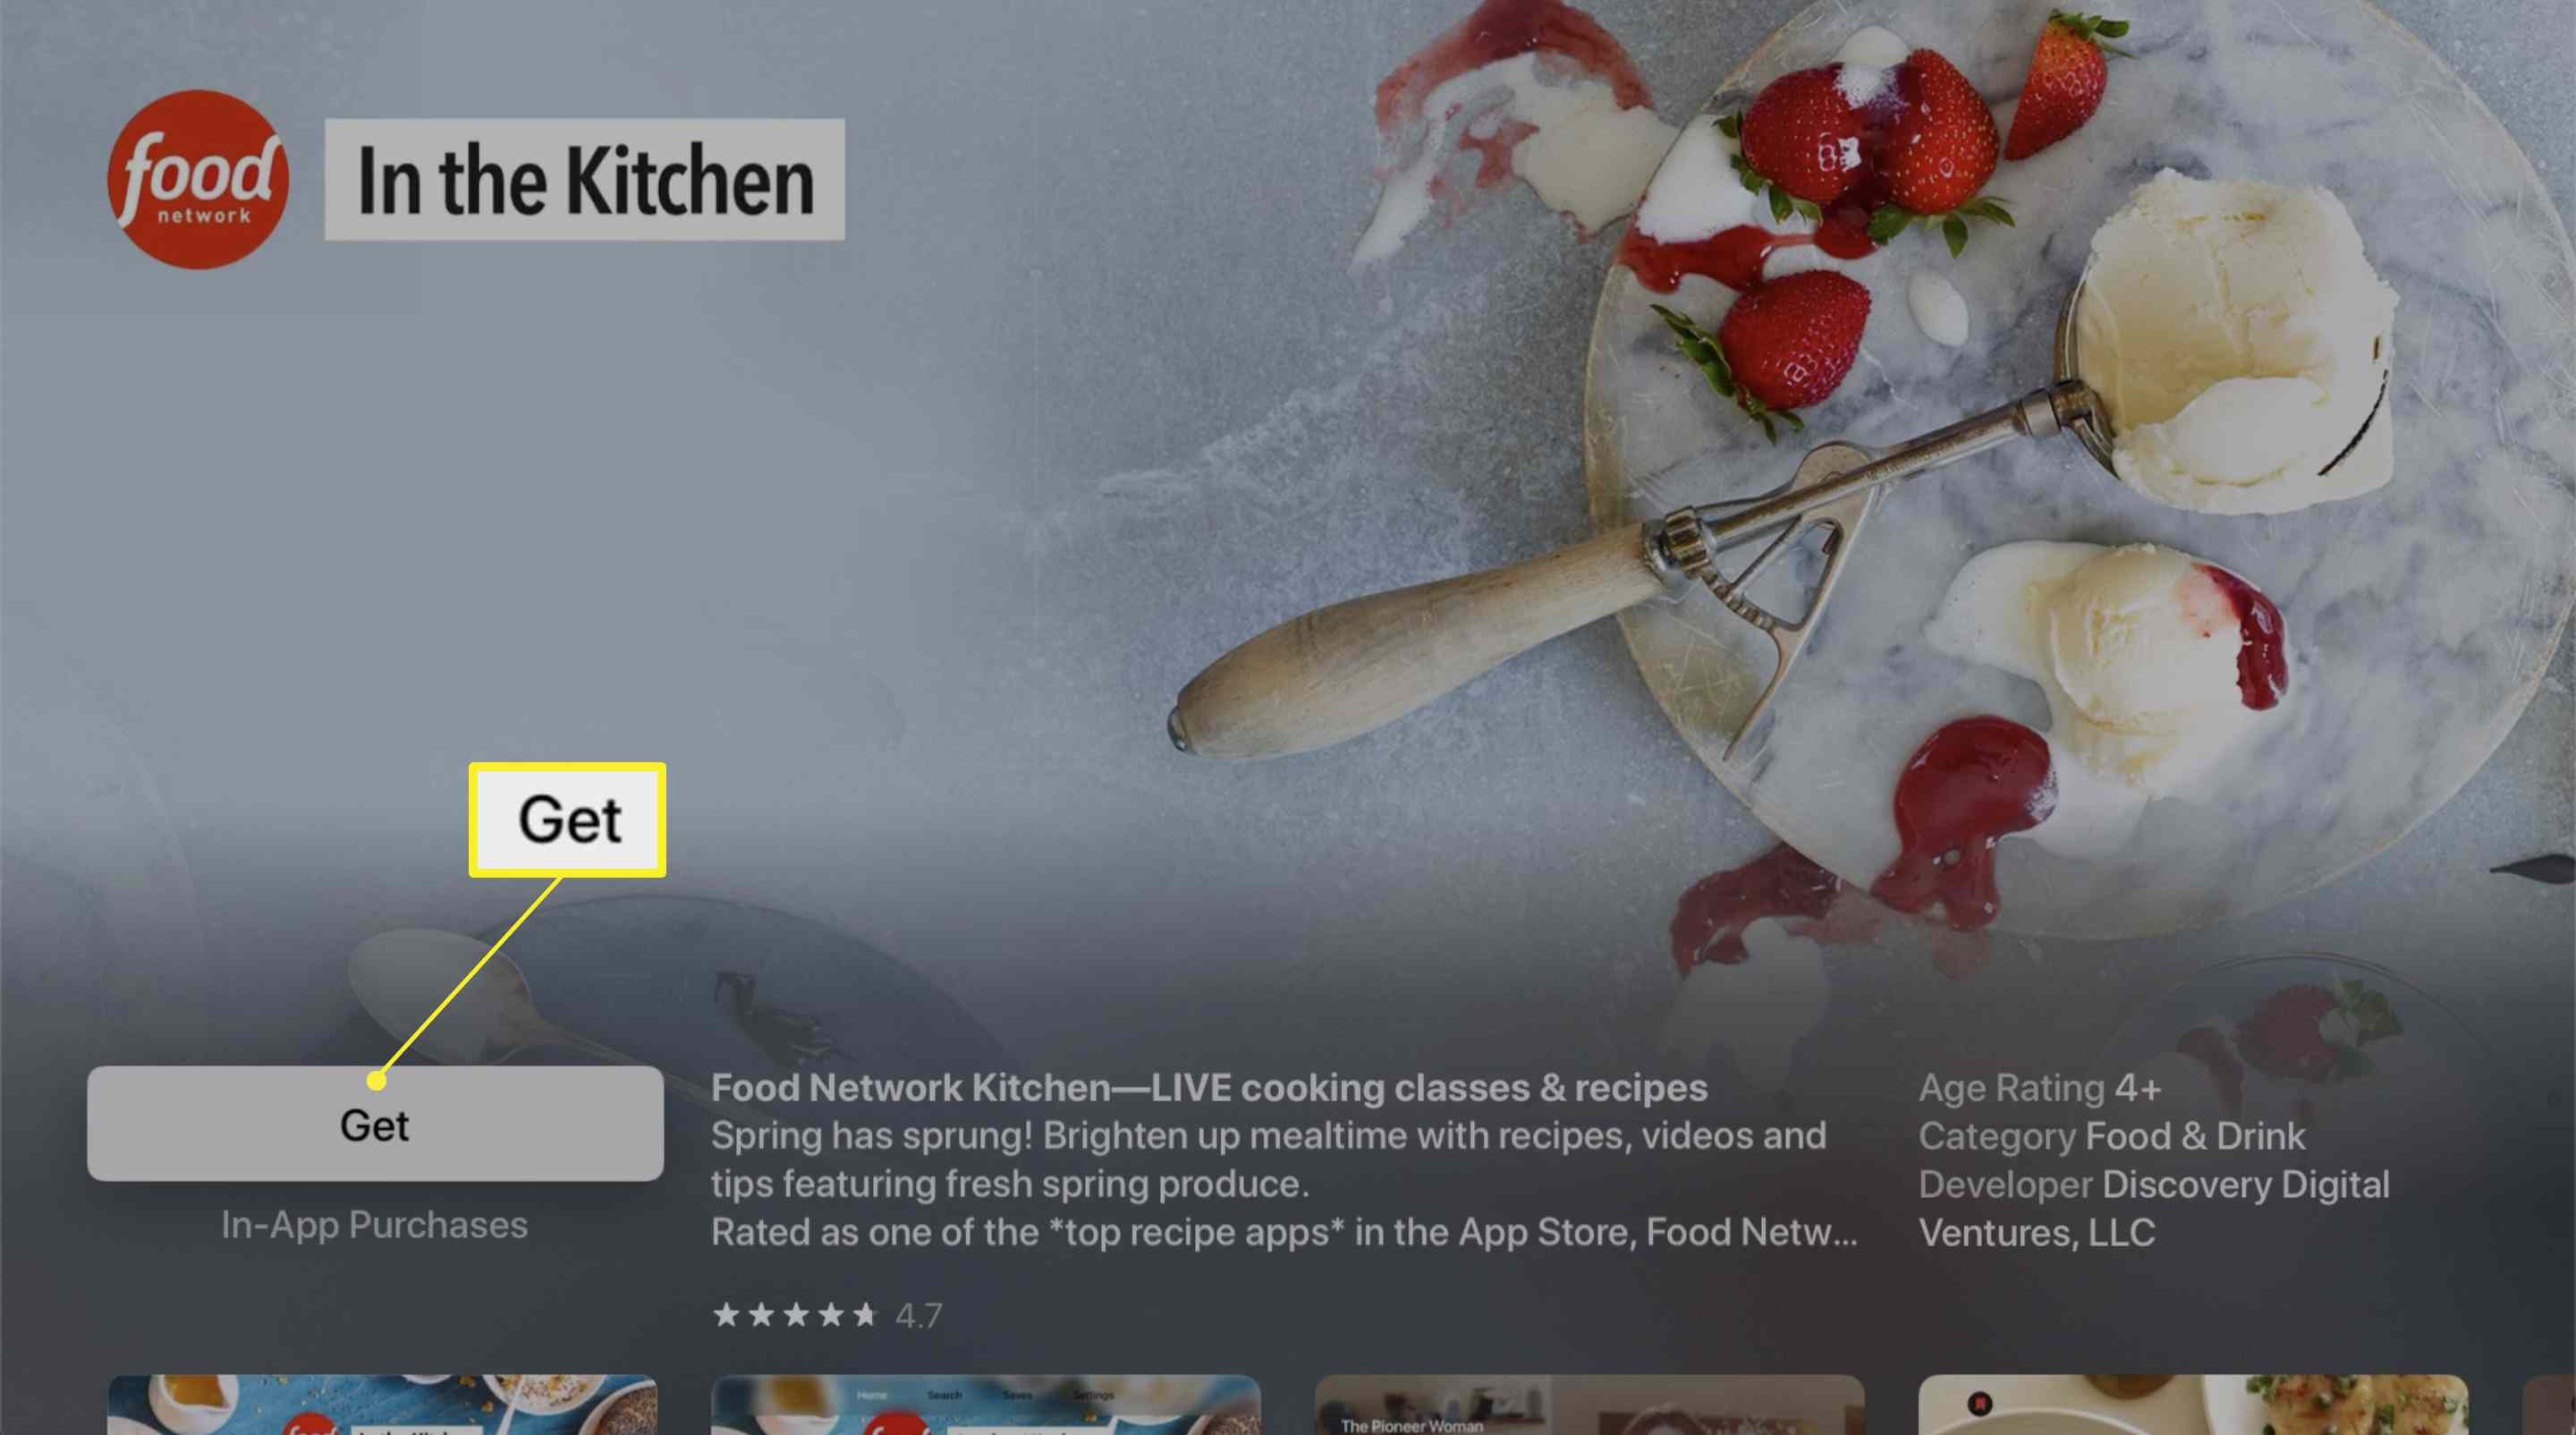 The Food Network app information screen for Apple TV